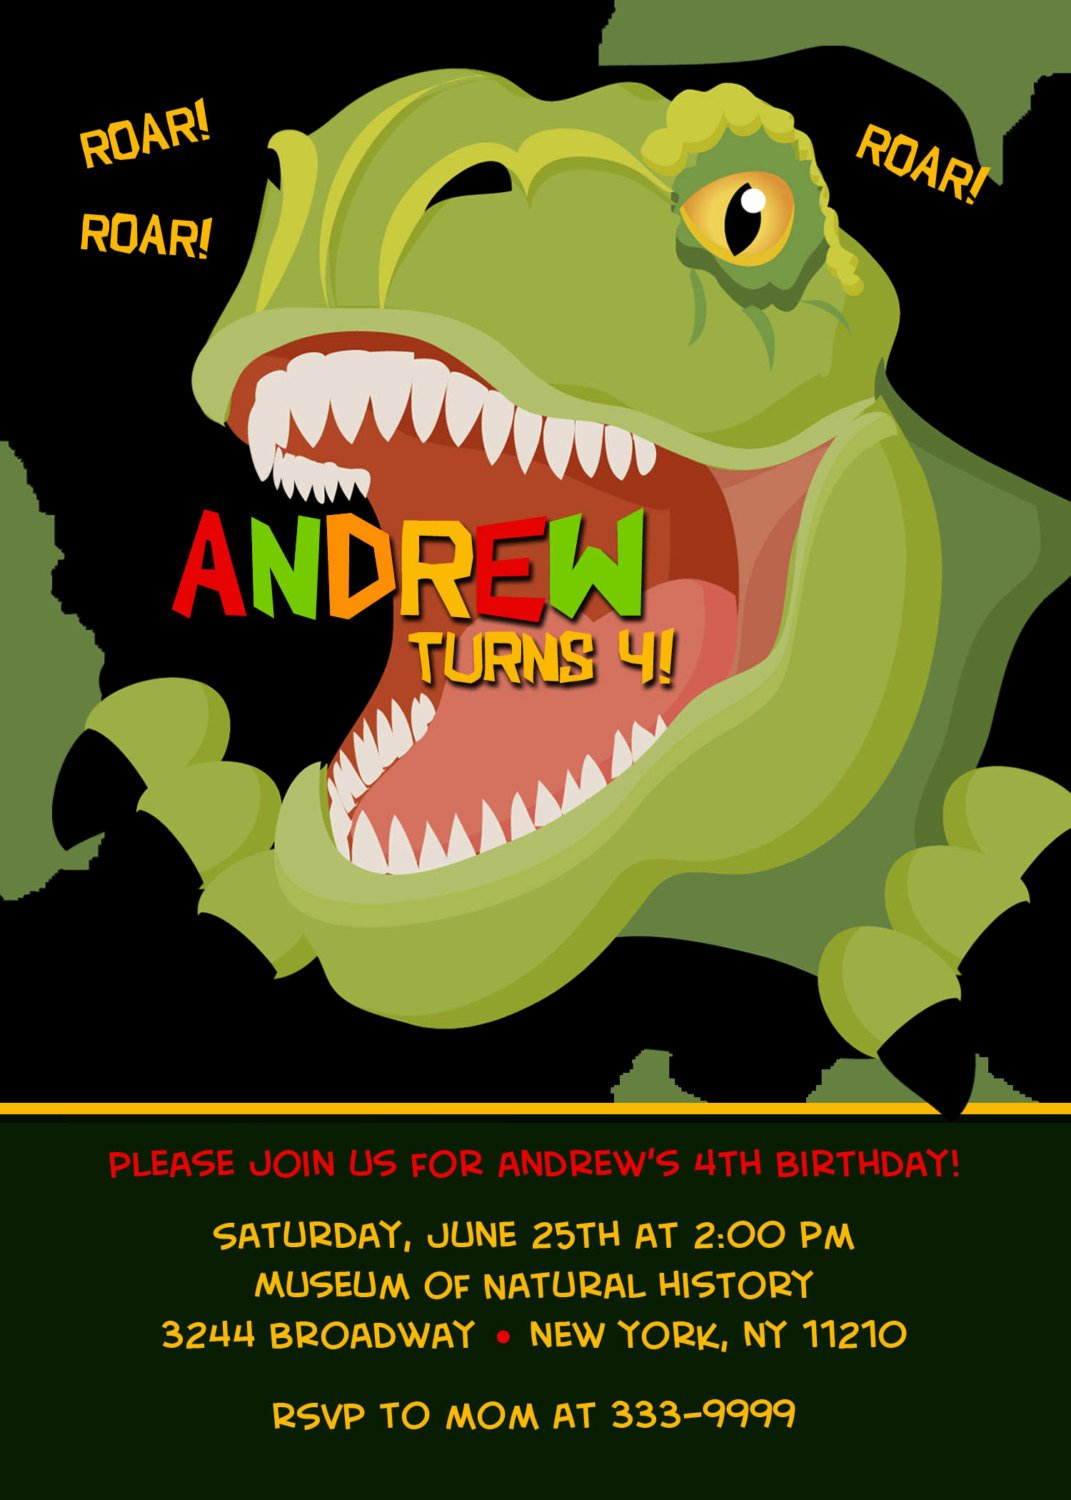 Dinosaur Birthday Invitations Free Fresh Custom Personalized T Rex Dinosaur Birthday Party by theprintfairy